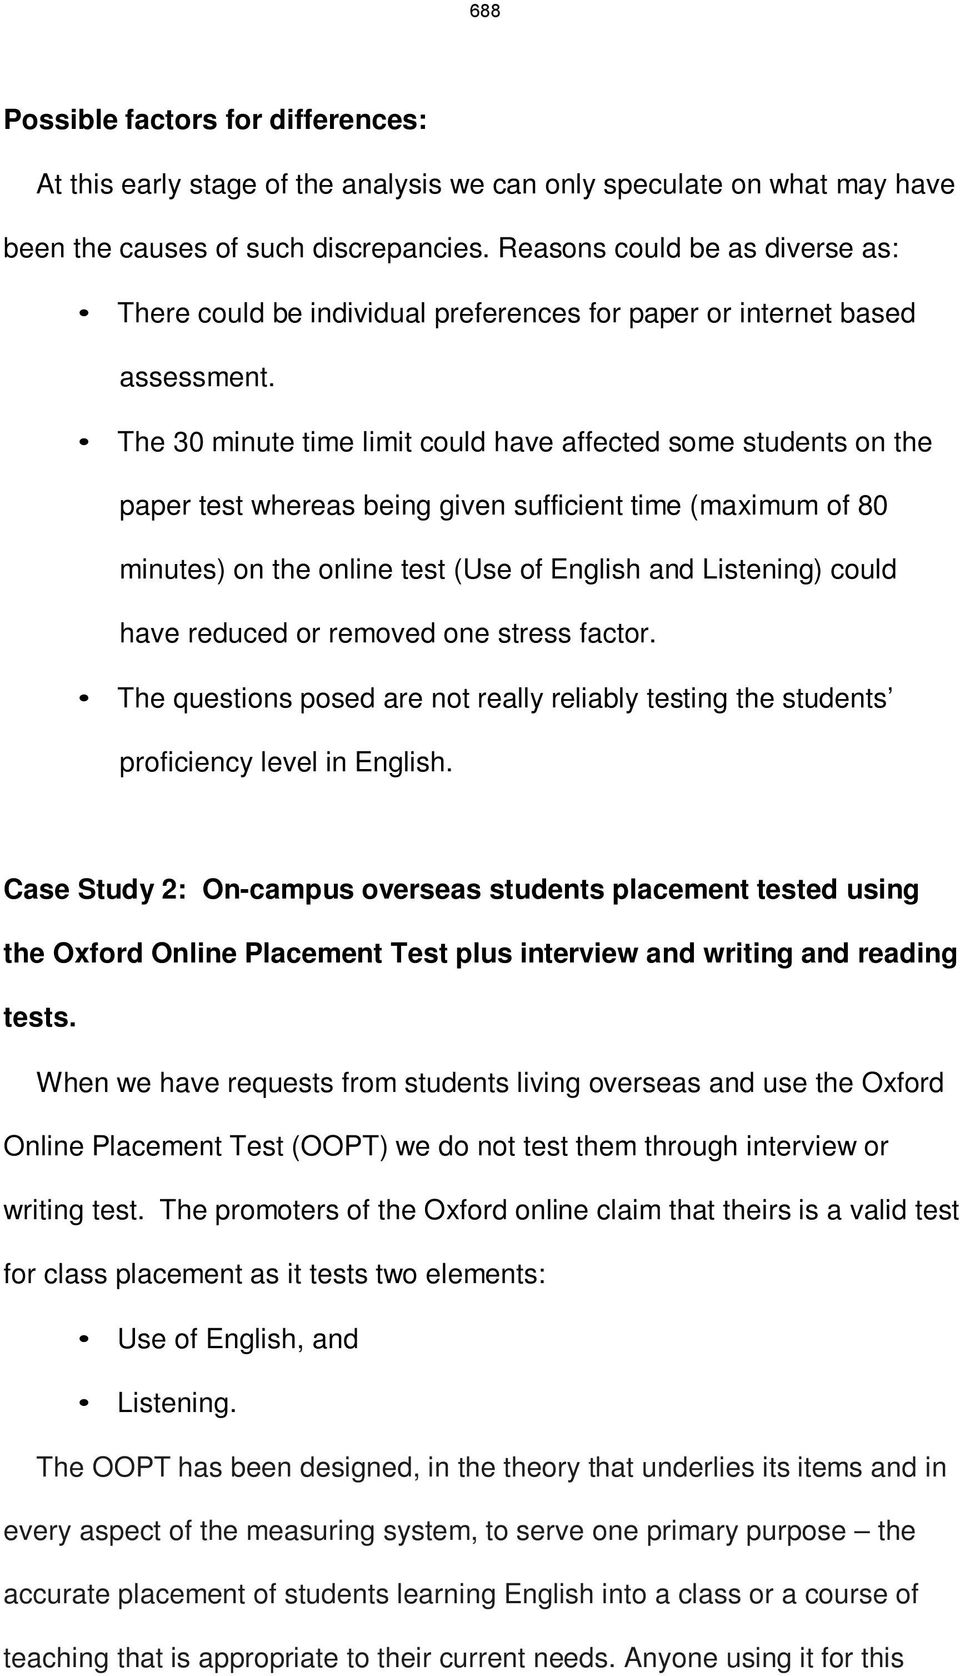 The 30 minute time limit could have affected some students on the paper test whereas being given sufficient time (maximum of 80 minutes) on the online test (Use of English and Listening) could have